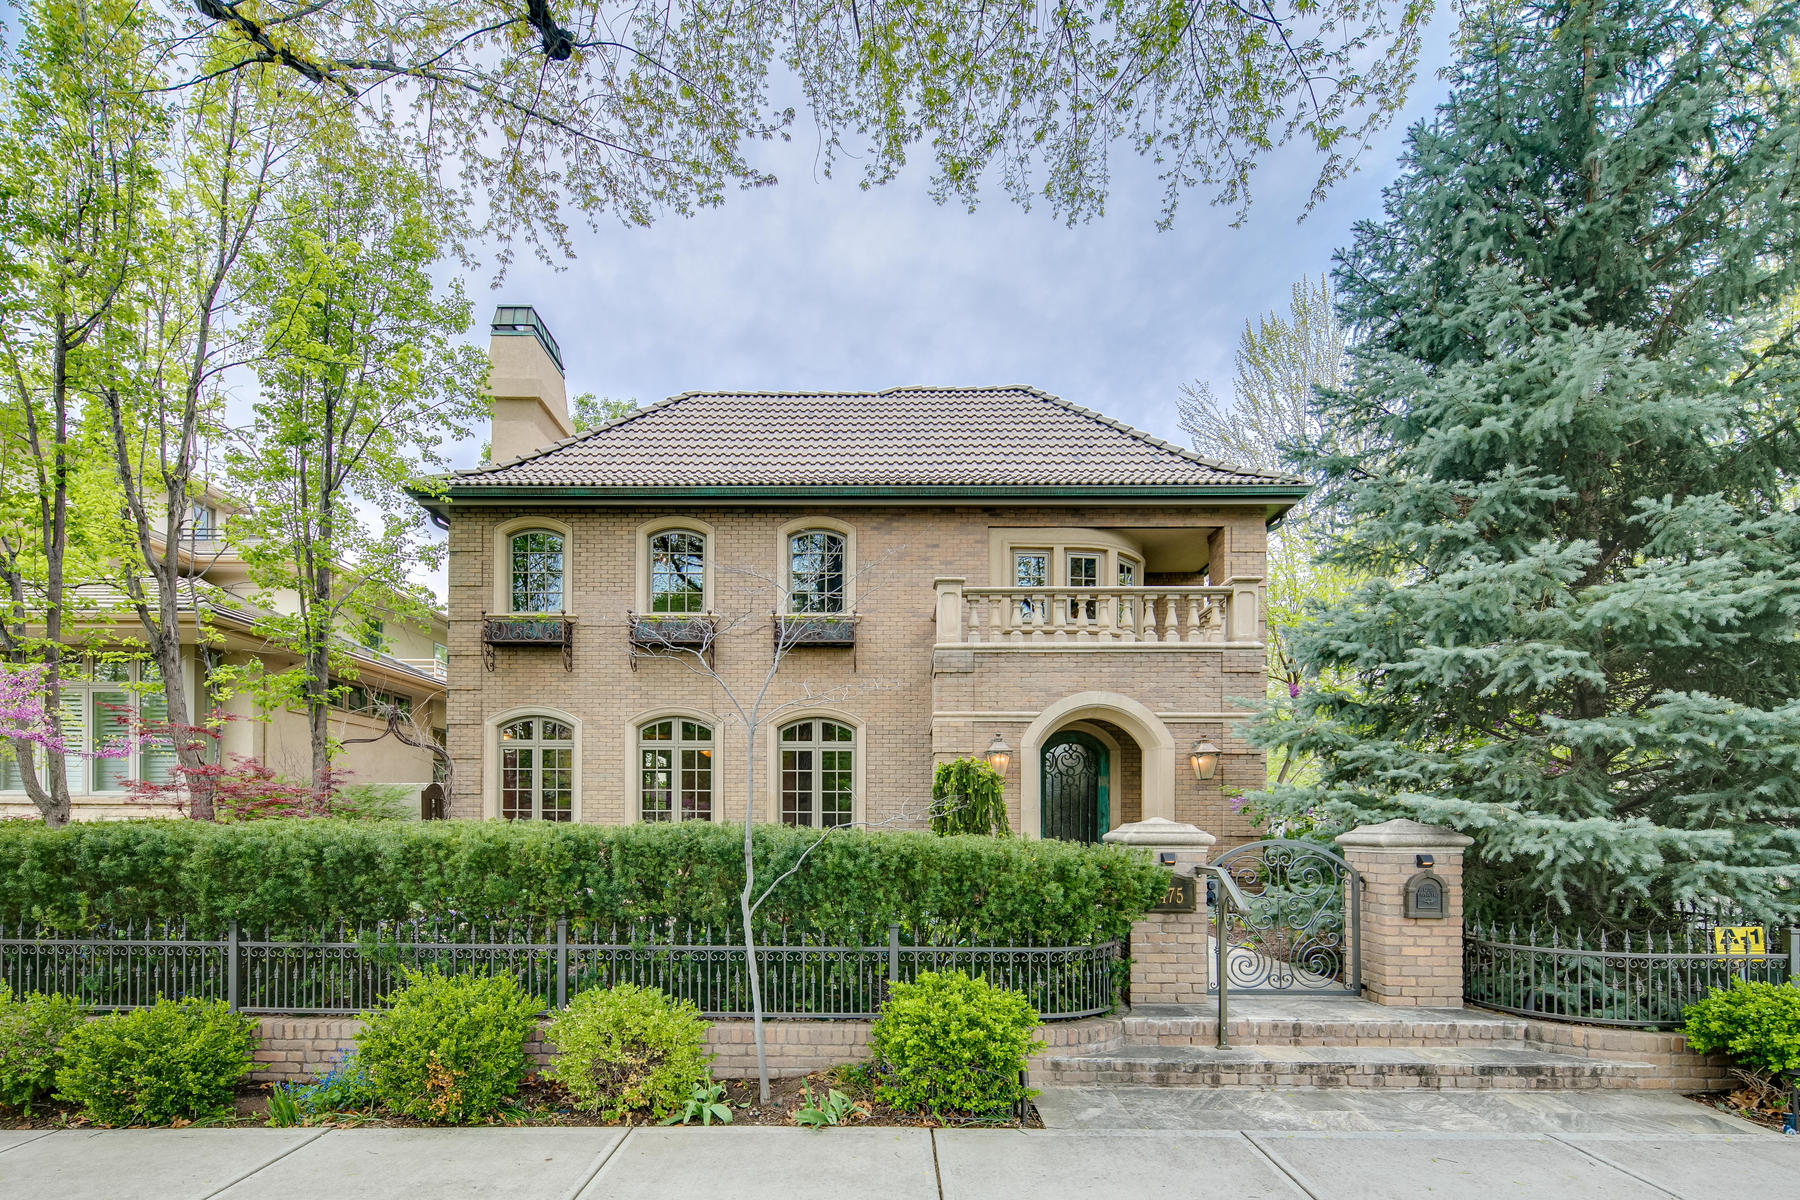 Single Family Homes for Sale at This incredible Mediterranean-Revival style home in the heart of Cherry Creek No 475 Madison Street Denver, Colorado 80206 United States